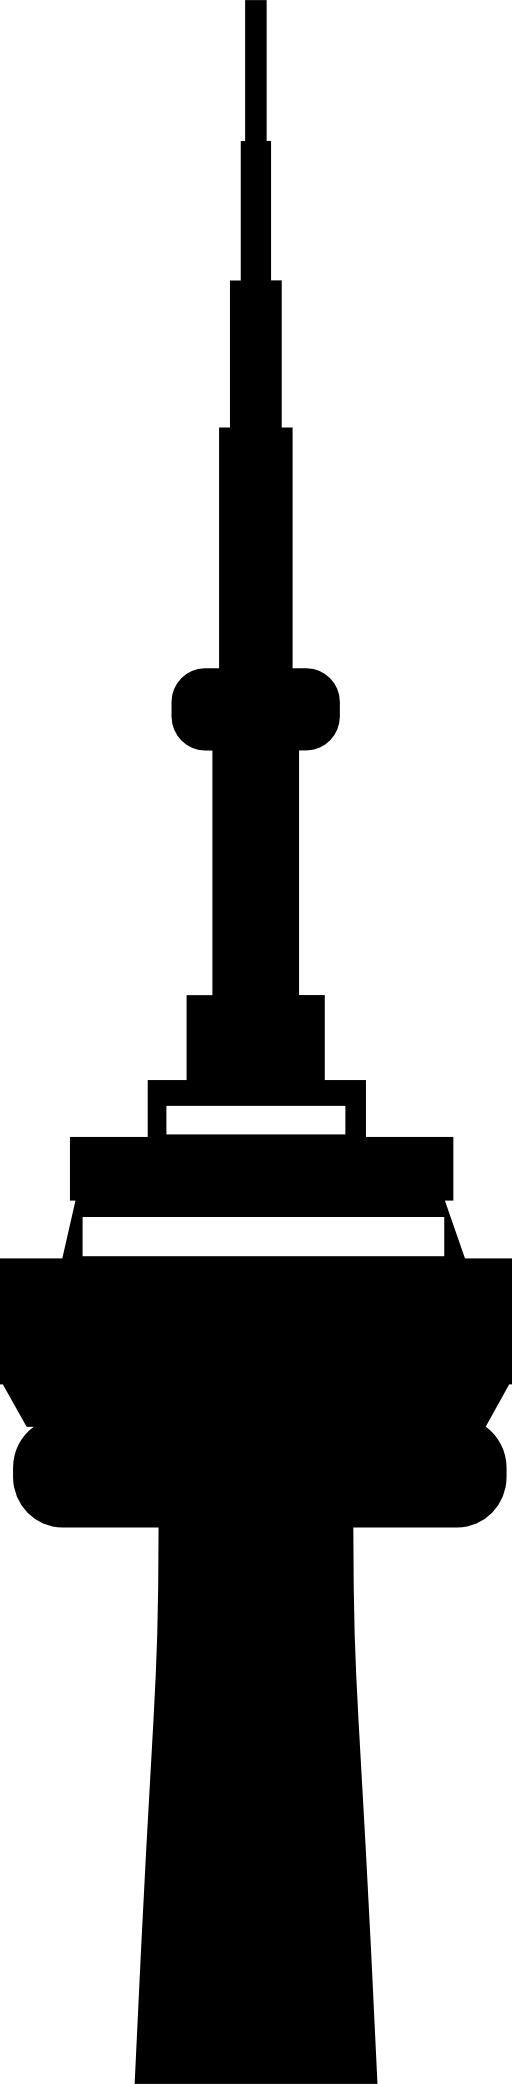 Cn tower vector.